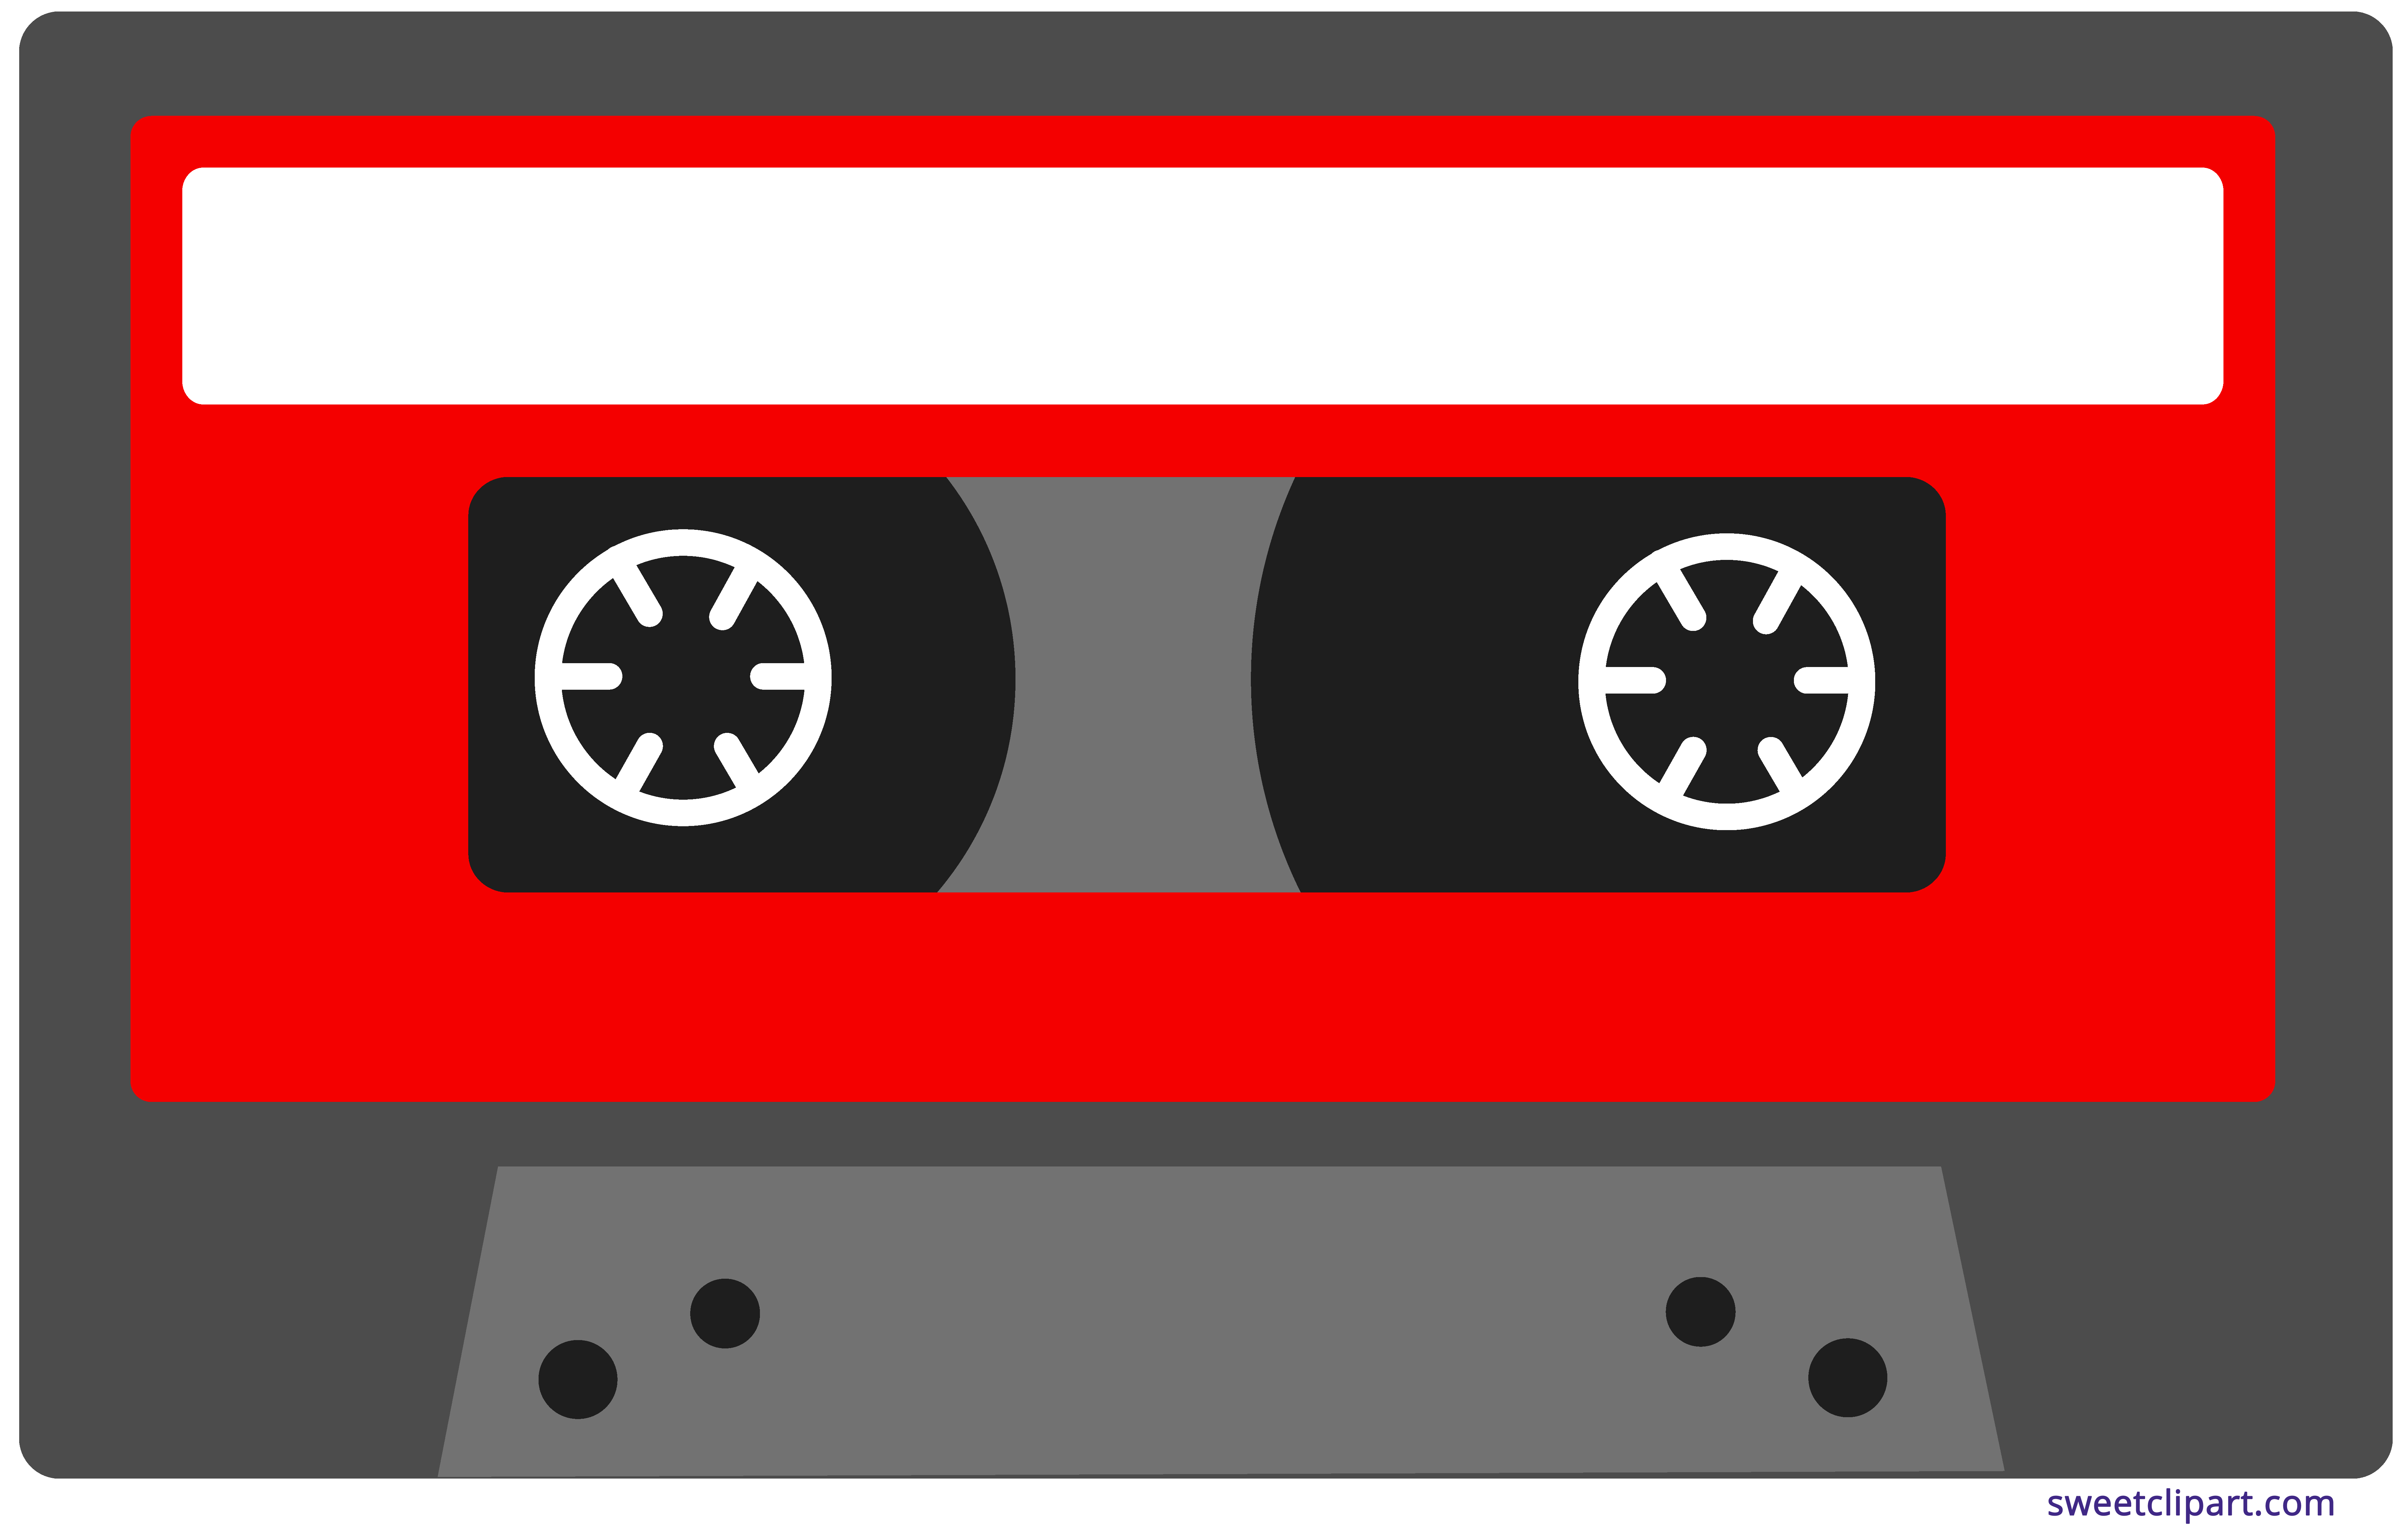 Cassette tape images clipart graphic black and white download Red Cassette Tape Clipart - Sweet Clip Art graphic black and white download